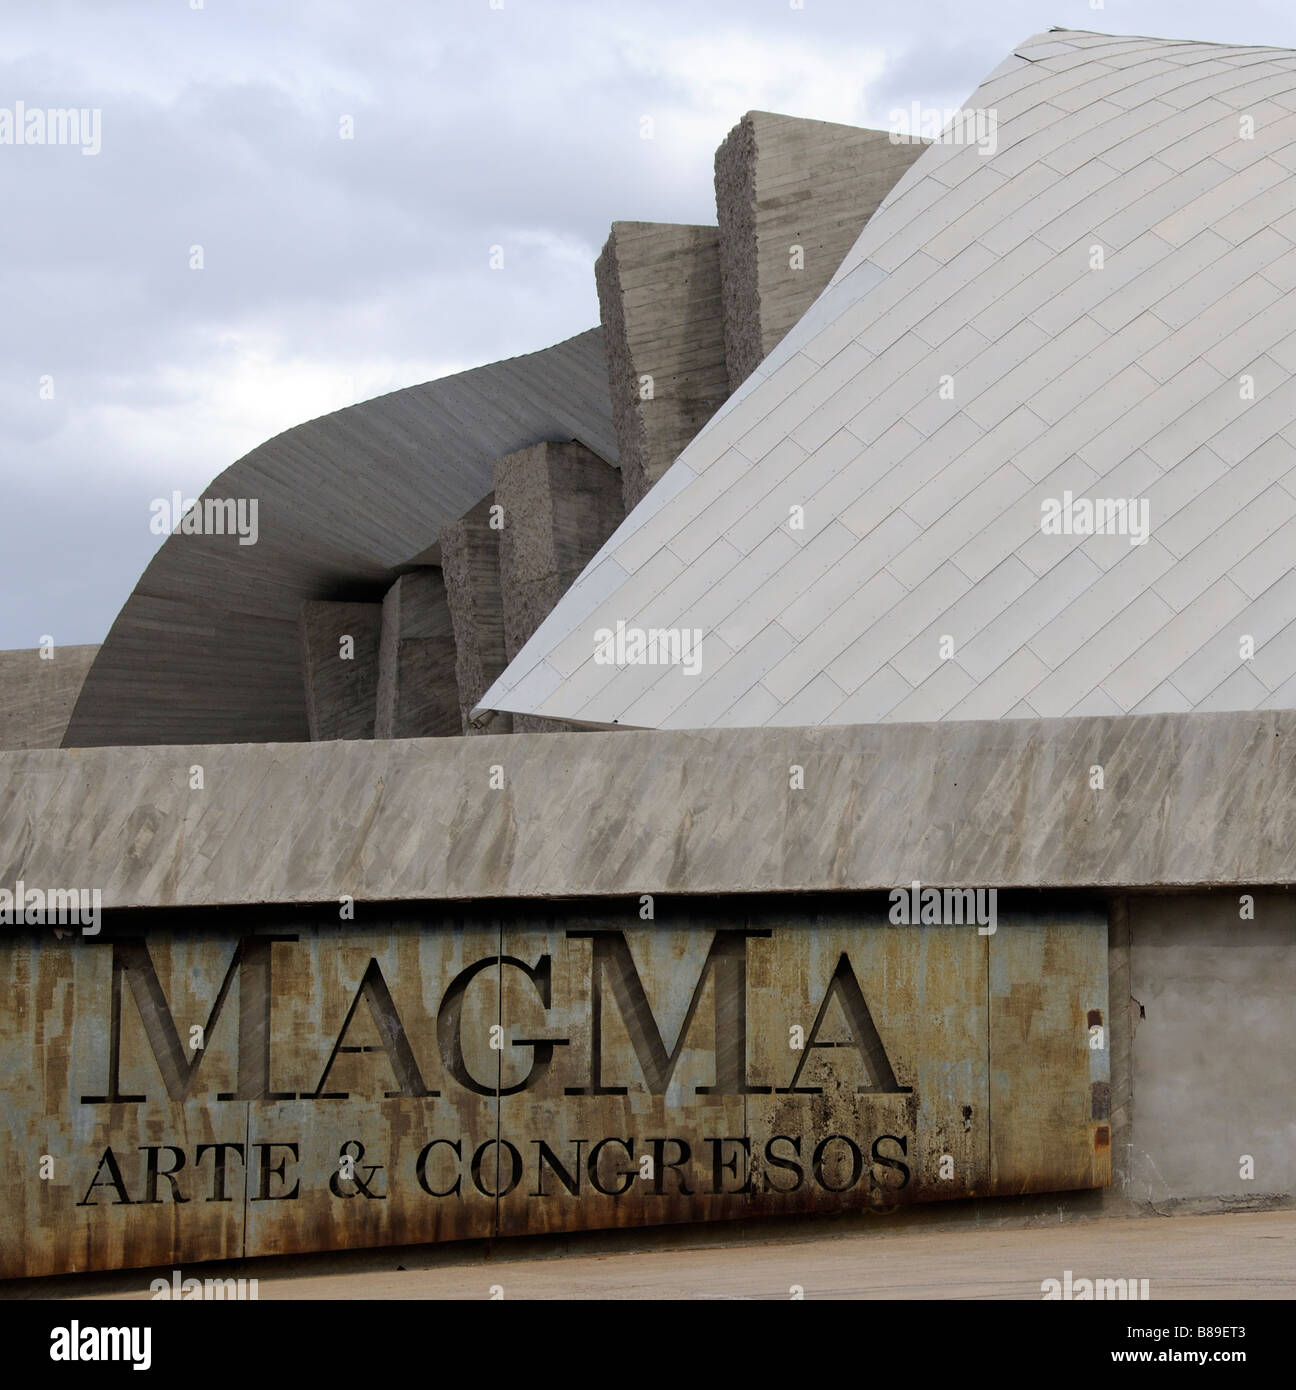 MagMa Art & Congress Centre Las Americanas Adeje south Tenerife Canary Islands a large concrete and stone building - Stock Image